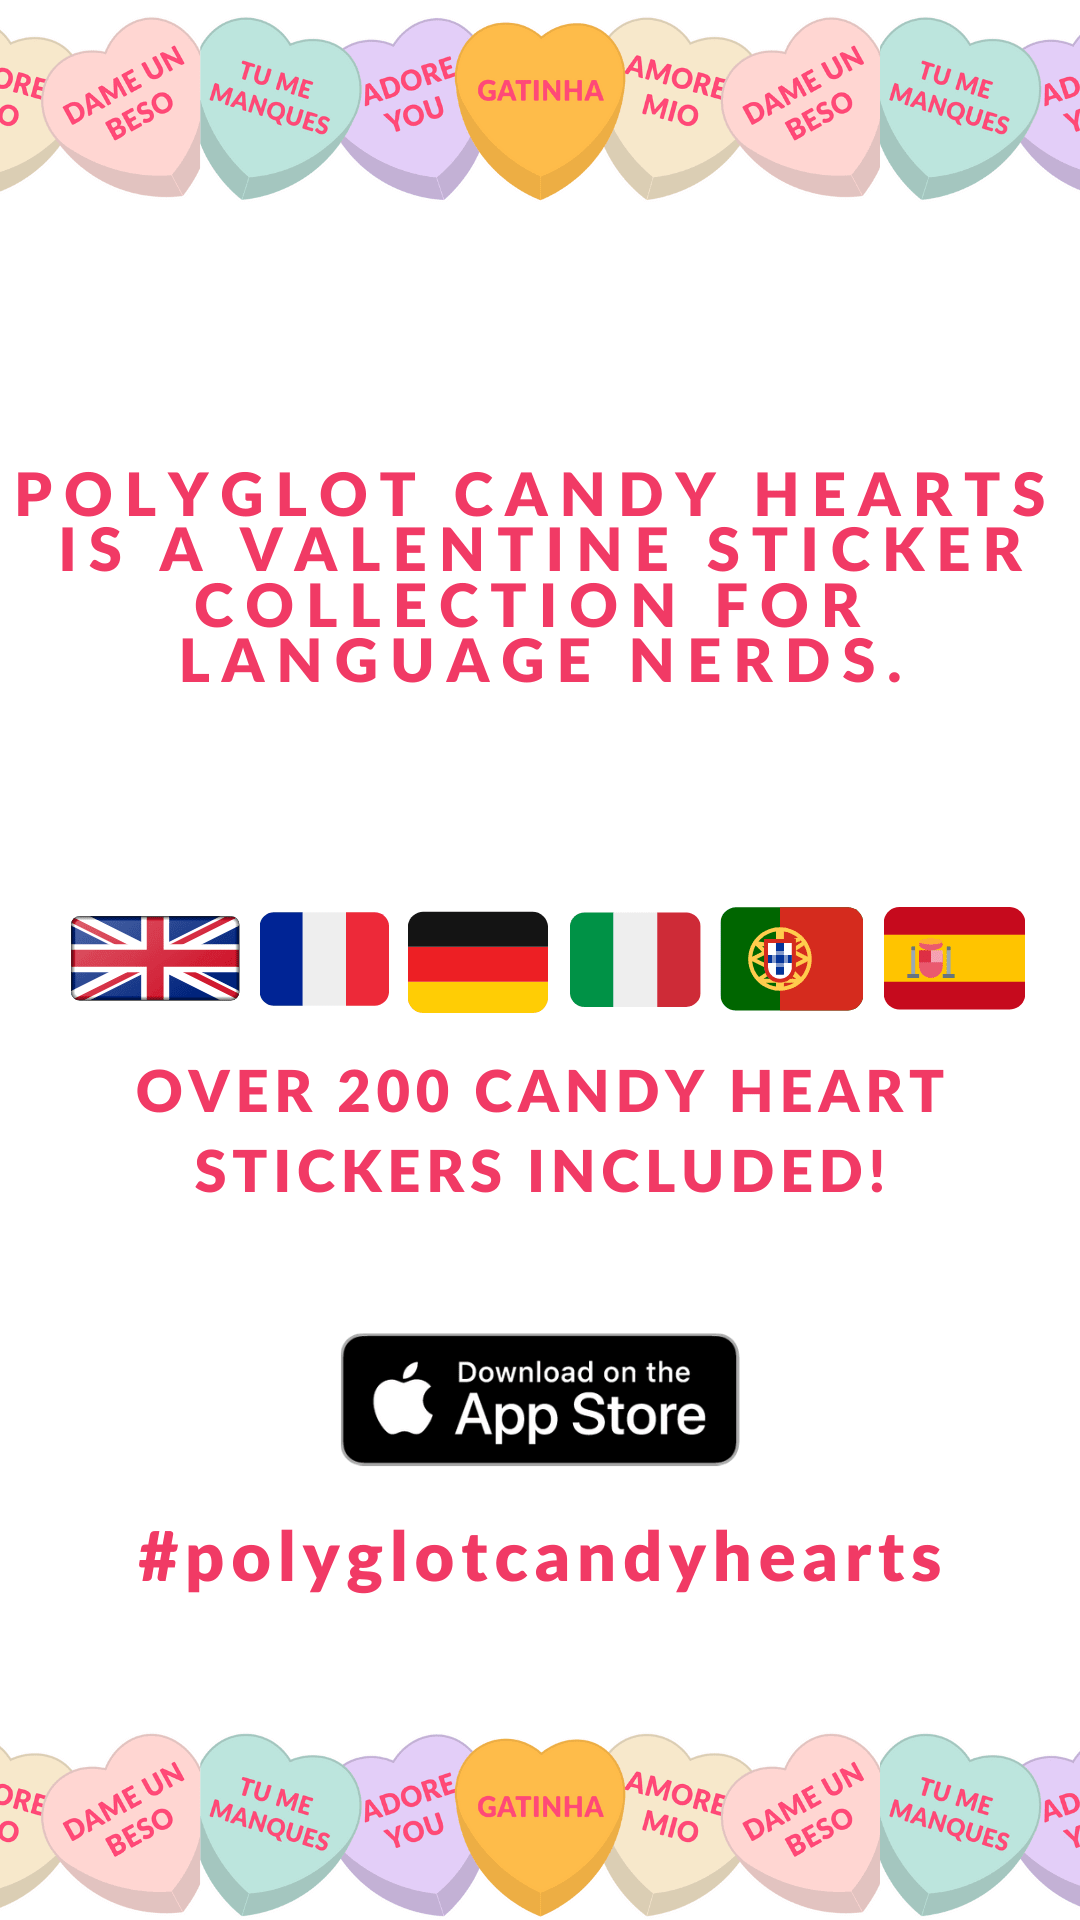 POLYGLOT CANDY HEARTS FOR iOS VALENTINES FOR LANGUAGE NERDS